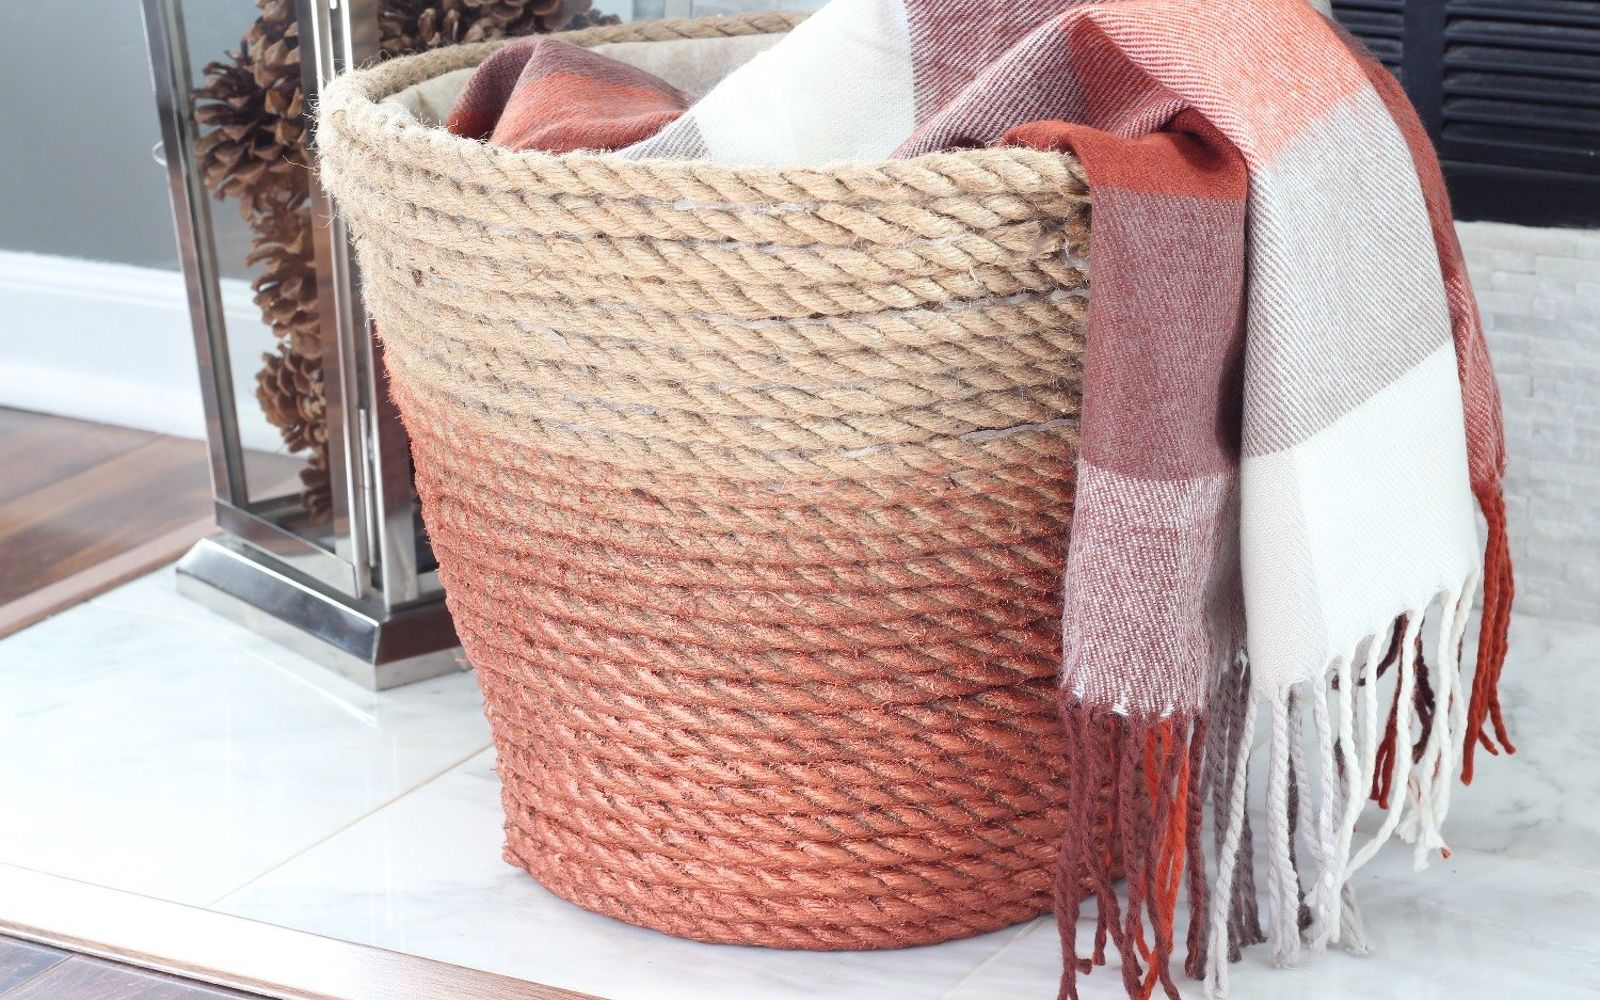 s 32 space saving storage ideas that ll keep your home organized, Turn a laundry bin into a rope basket